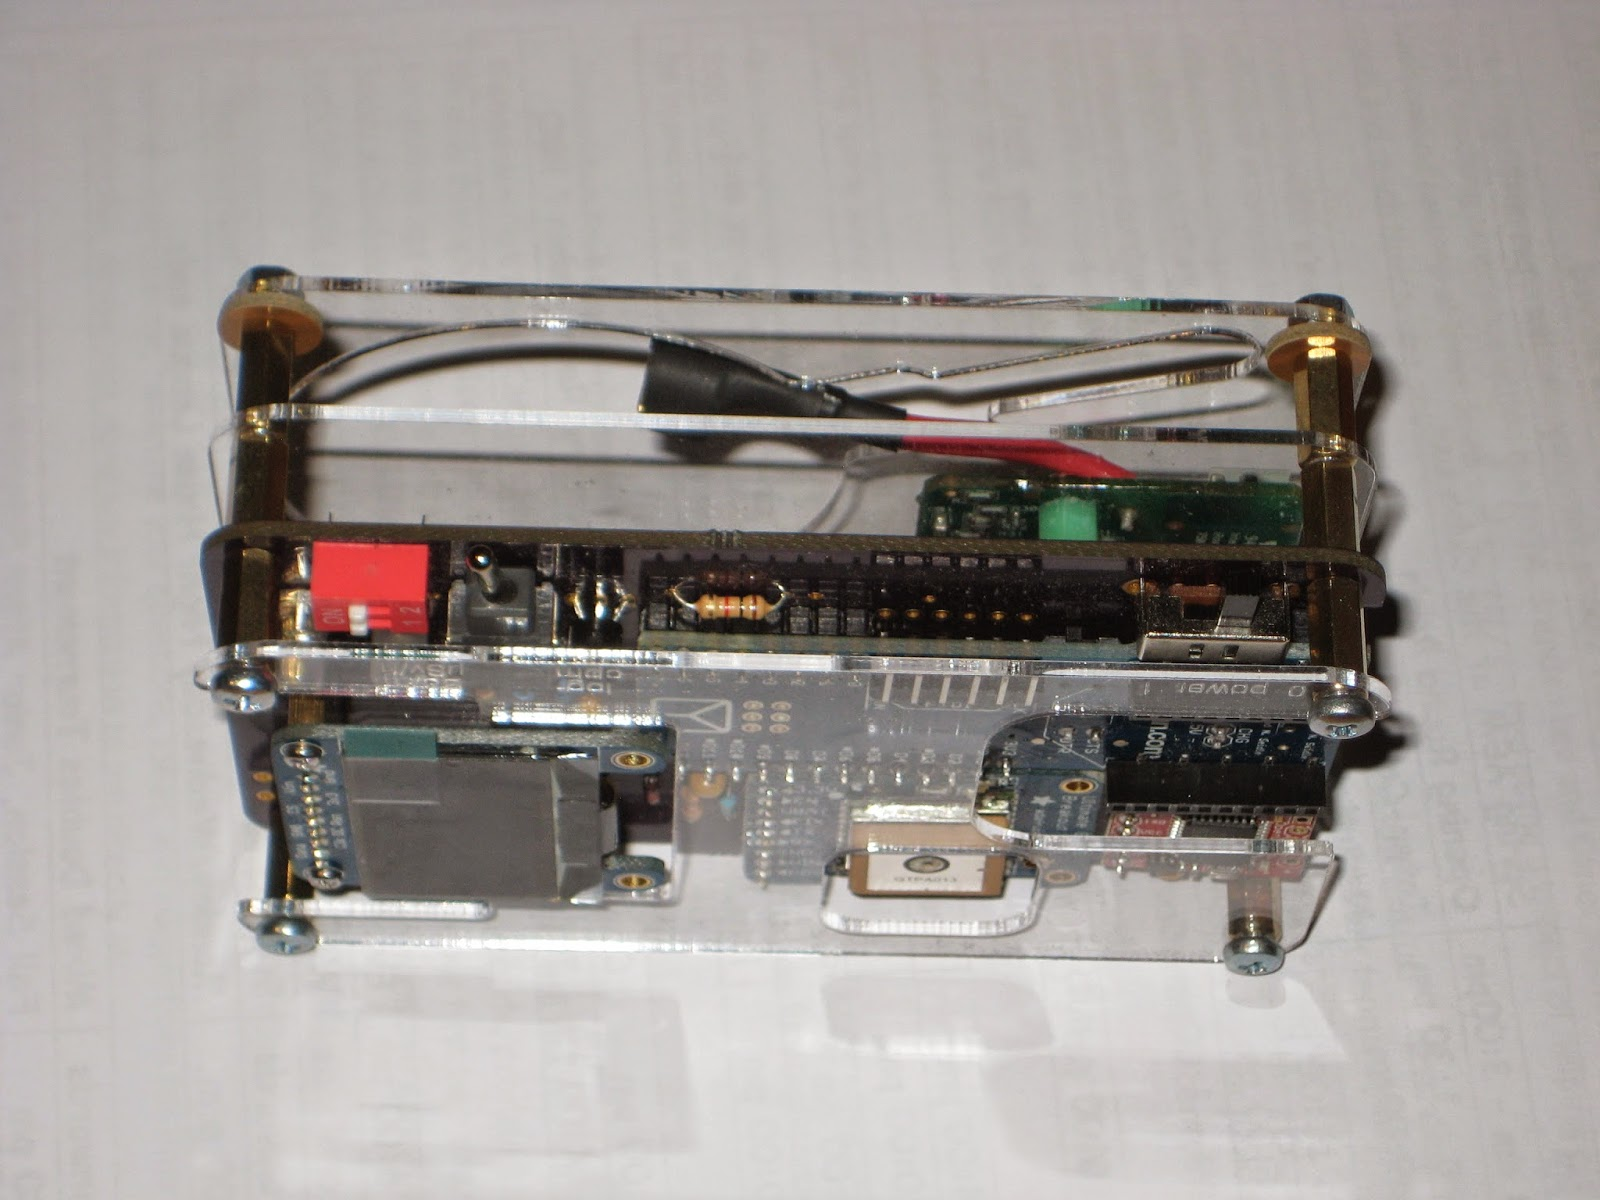 Posts With Geiger Label Mc34063 Stepdown Dc Converter Mc34063a Circuit Step Down Since It Took Me So Long To Build I Forgot A Lot Of Details Know Should Have Logged Impressions Along The Way Thats Why Its Called Web Log